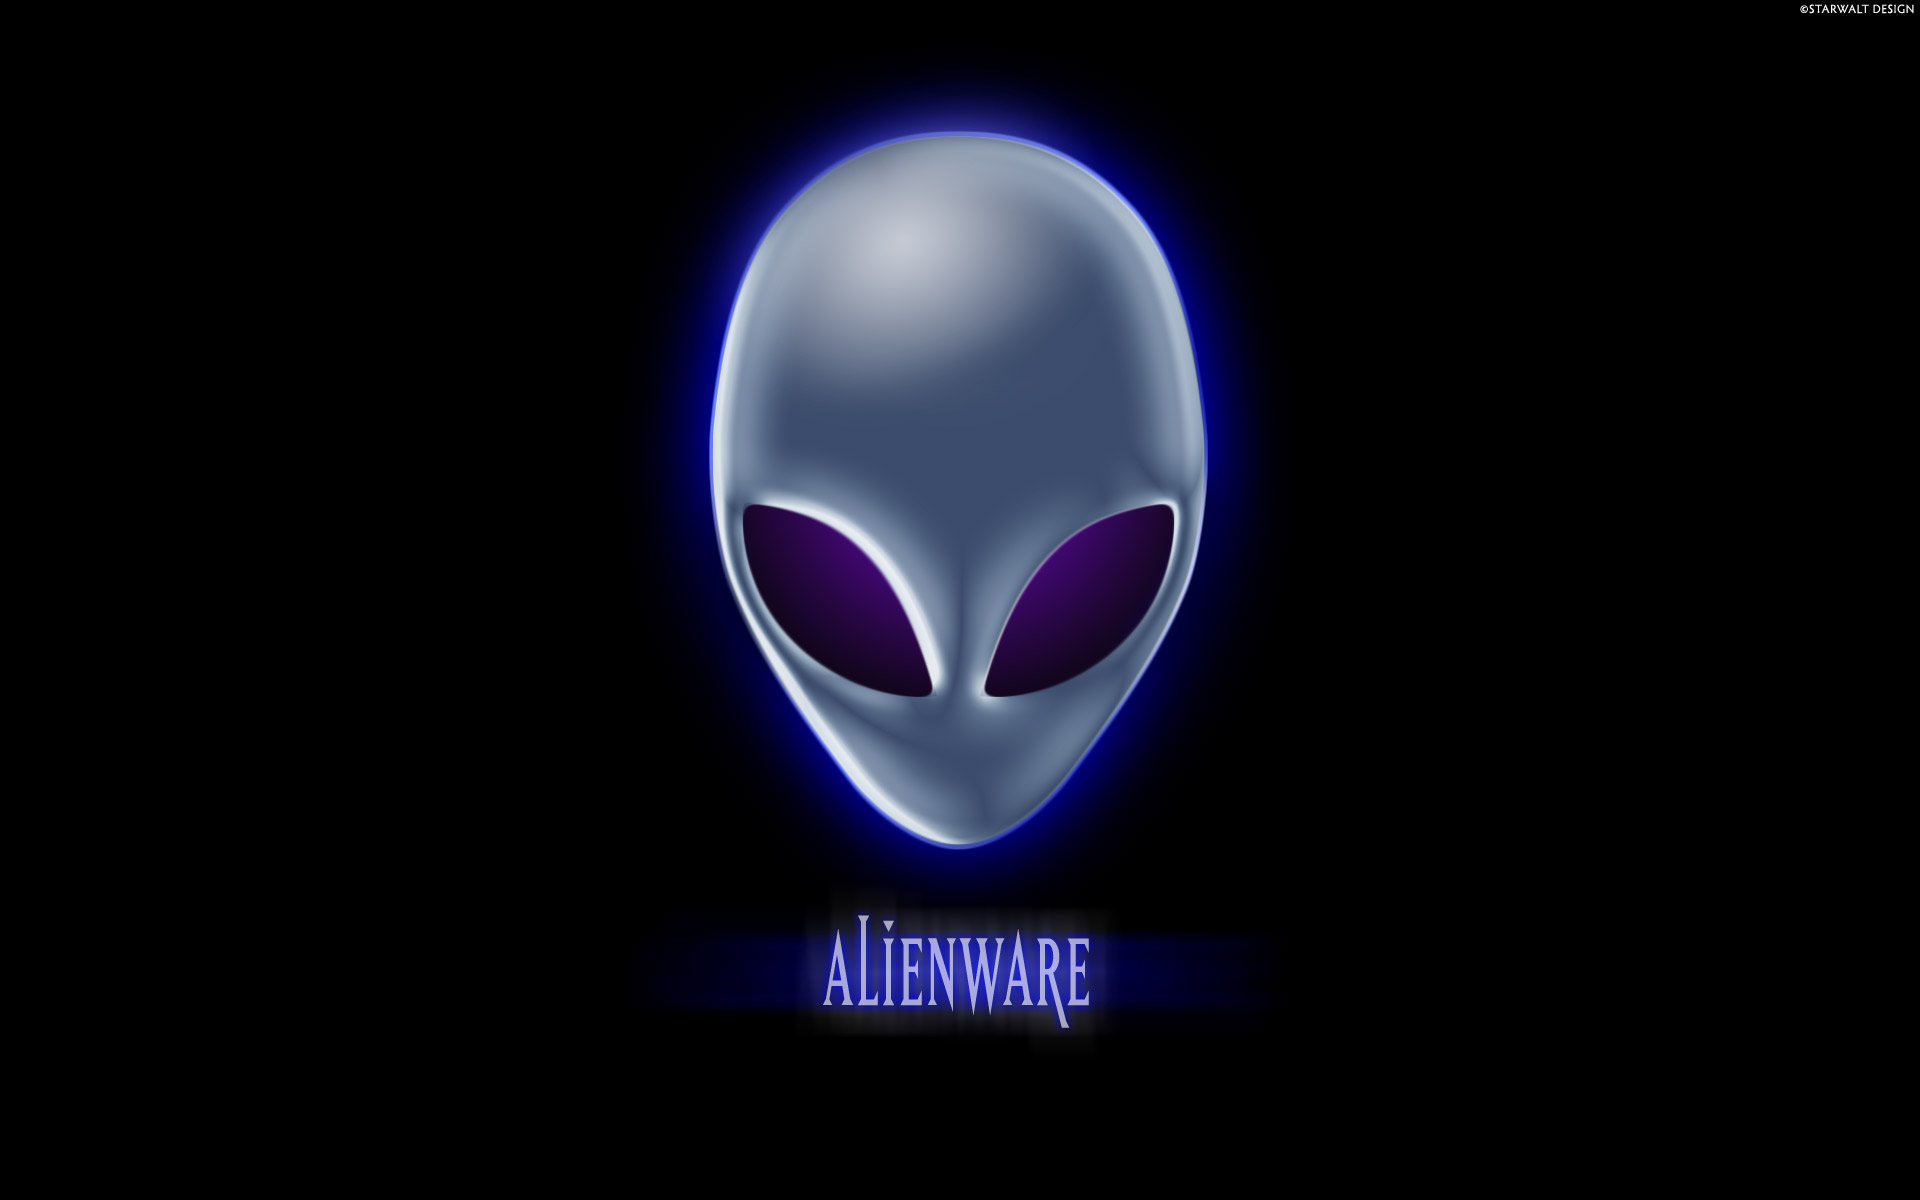 Hd Wallpapers For Laptop 15 6 Inch Screen Alienware Wallpapers High Quality Download Free